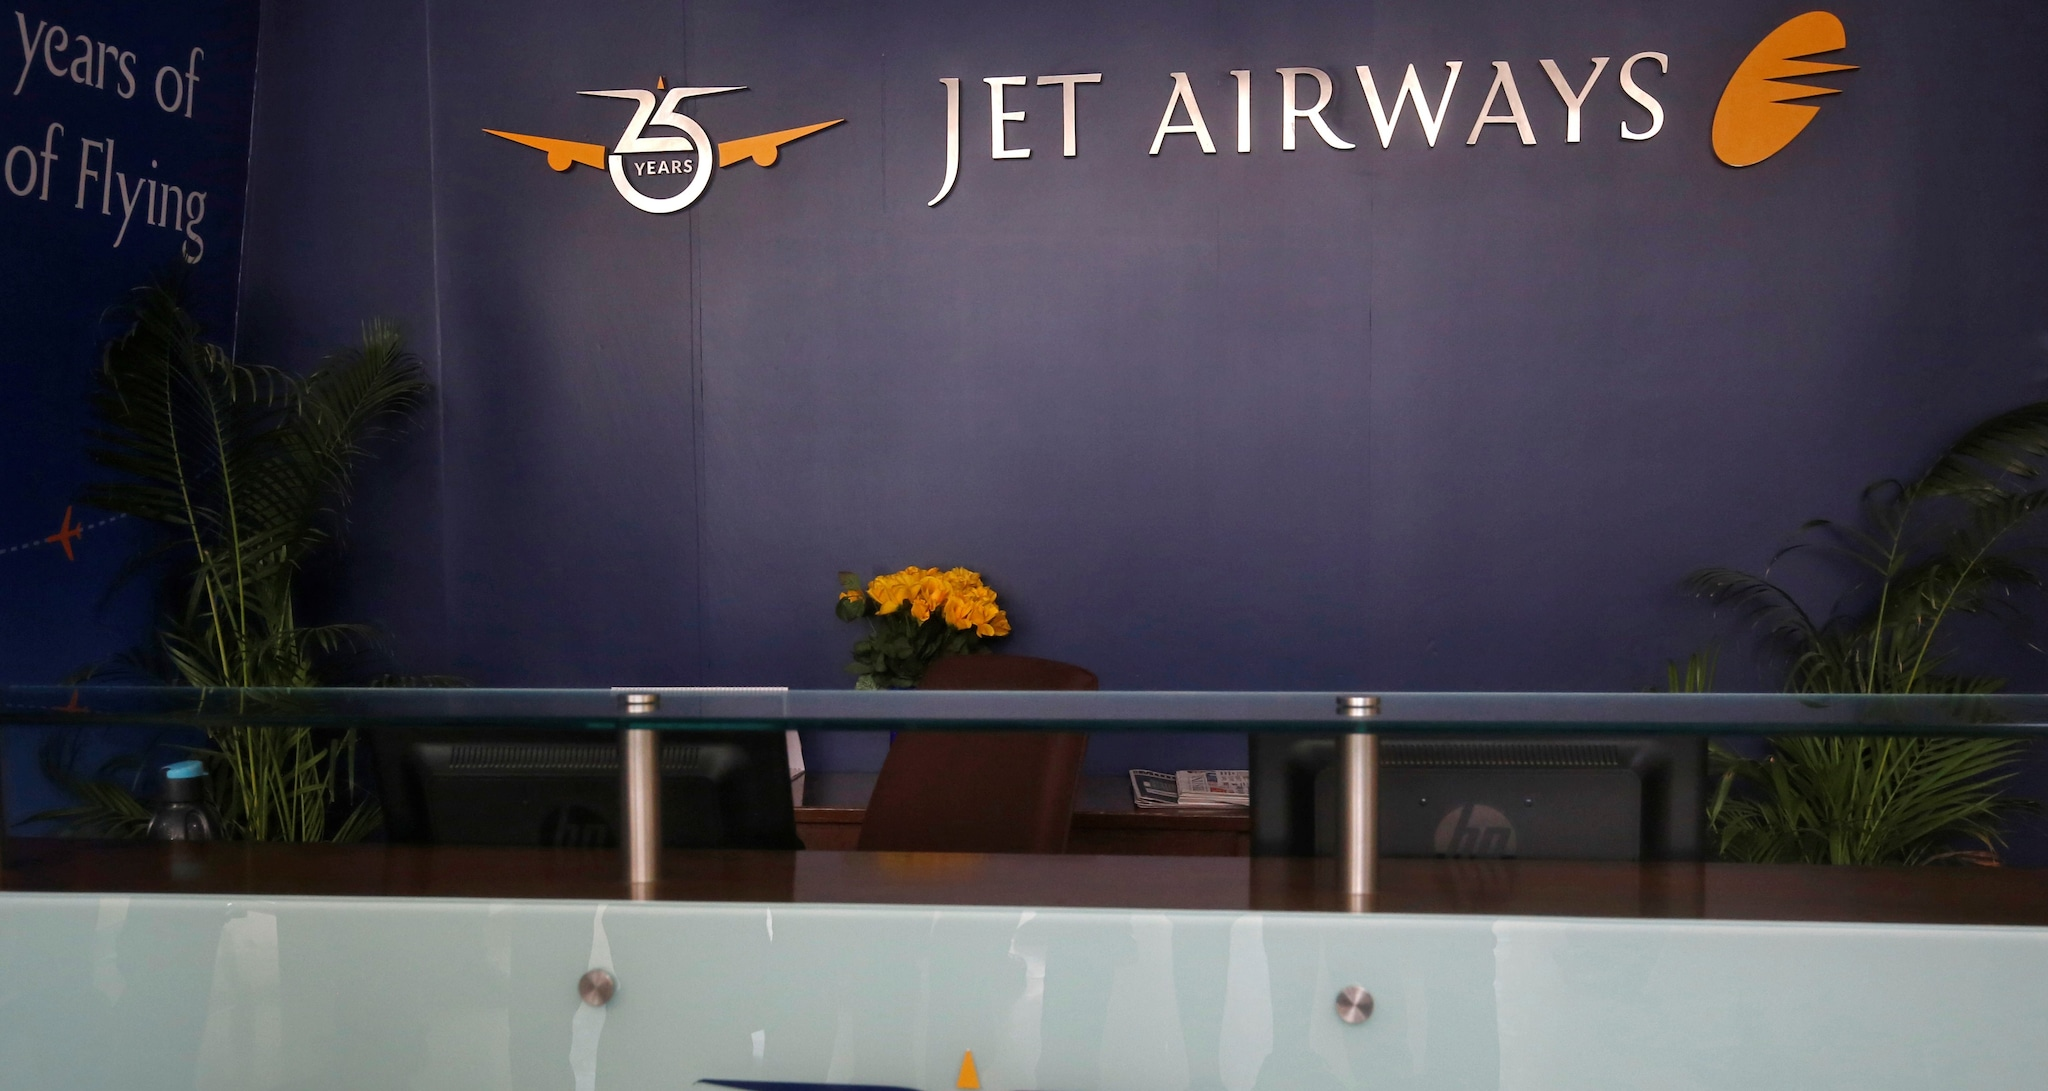 Jet Airways: State Bank of India said they have received bids from Etihad Airways and a few unsolicited parties to take over the grounded airline. (Image: Reuters)